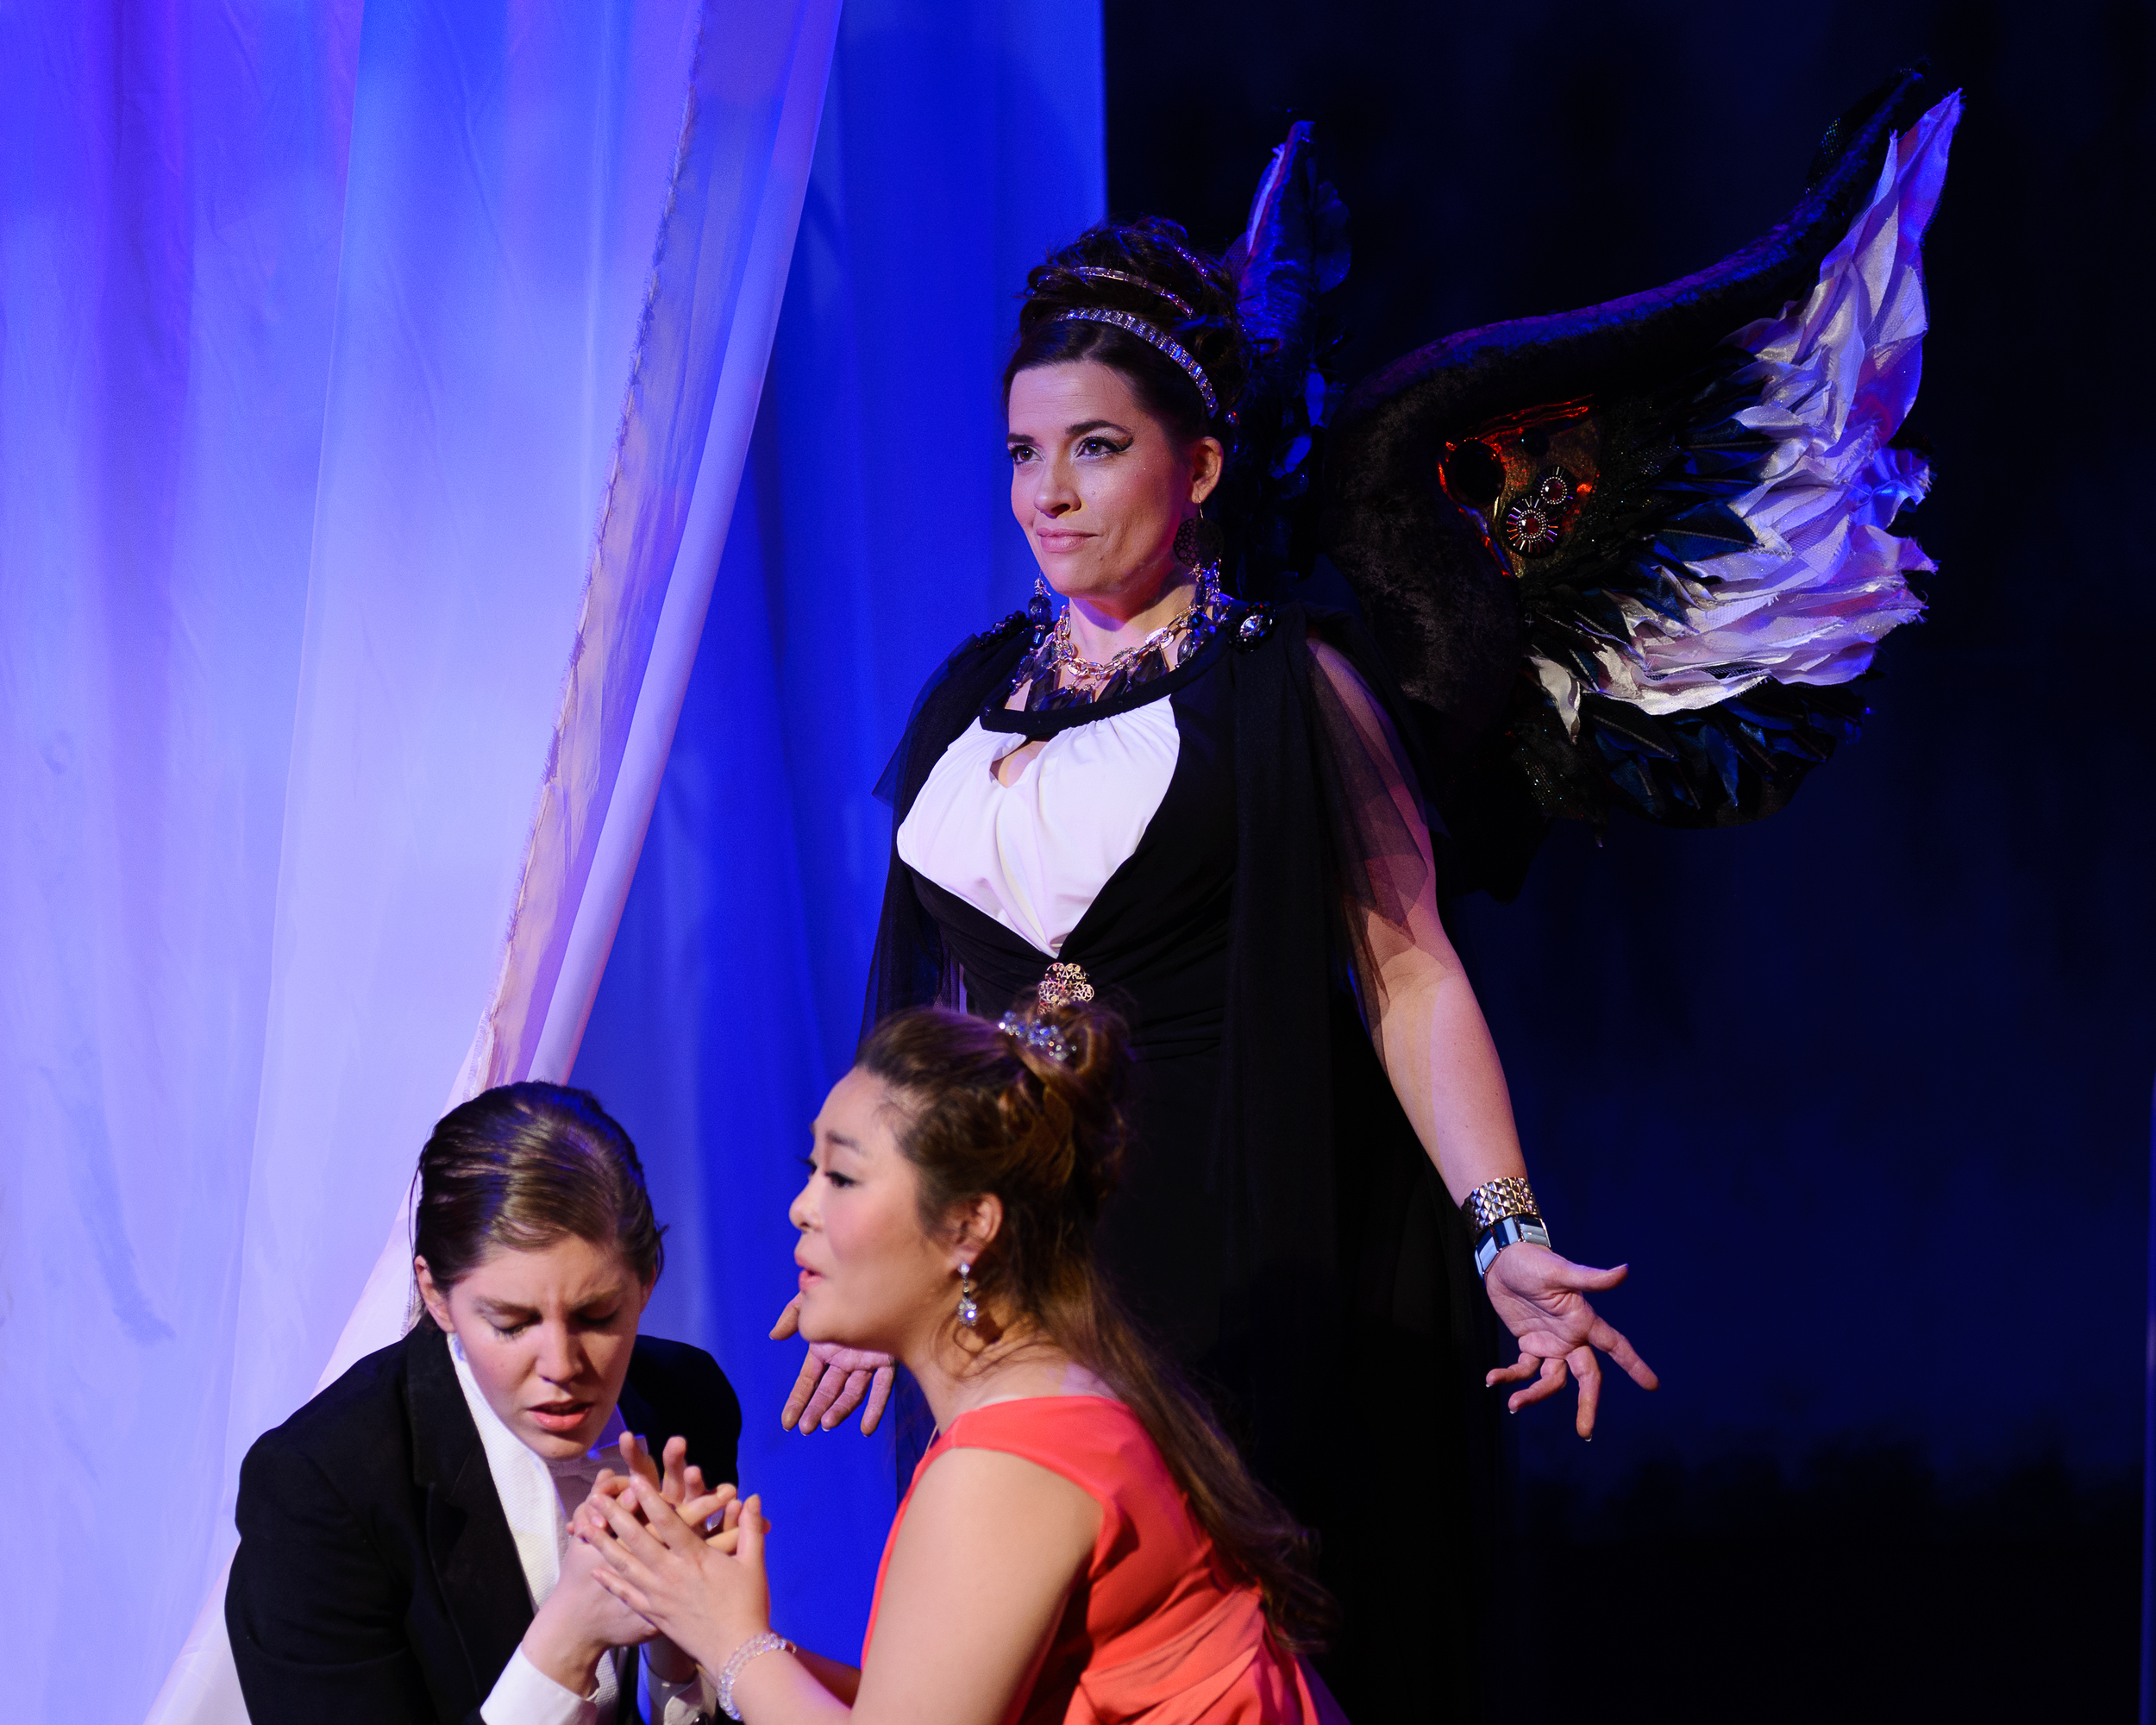 Laura Coale as Orfeo, Yunnie Park as Eurydice and Julia Fox as Amore in Opera in the Heights' Orfeo ed Euridice.  Photos by Deji Osinulu Photography.